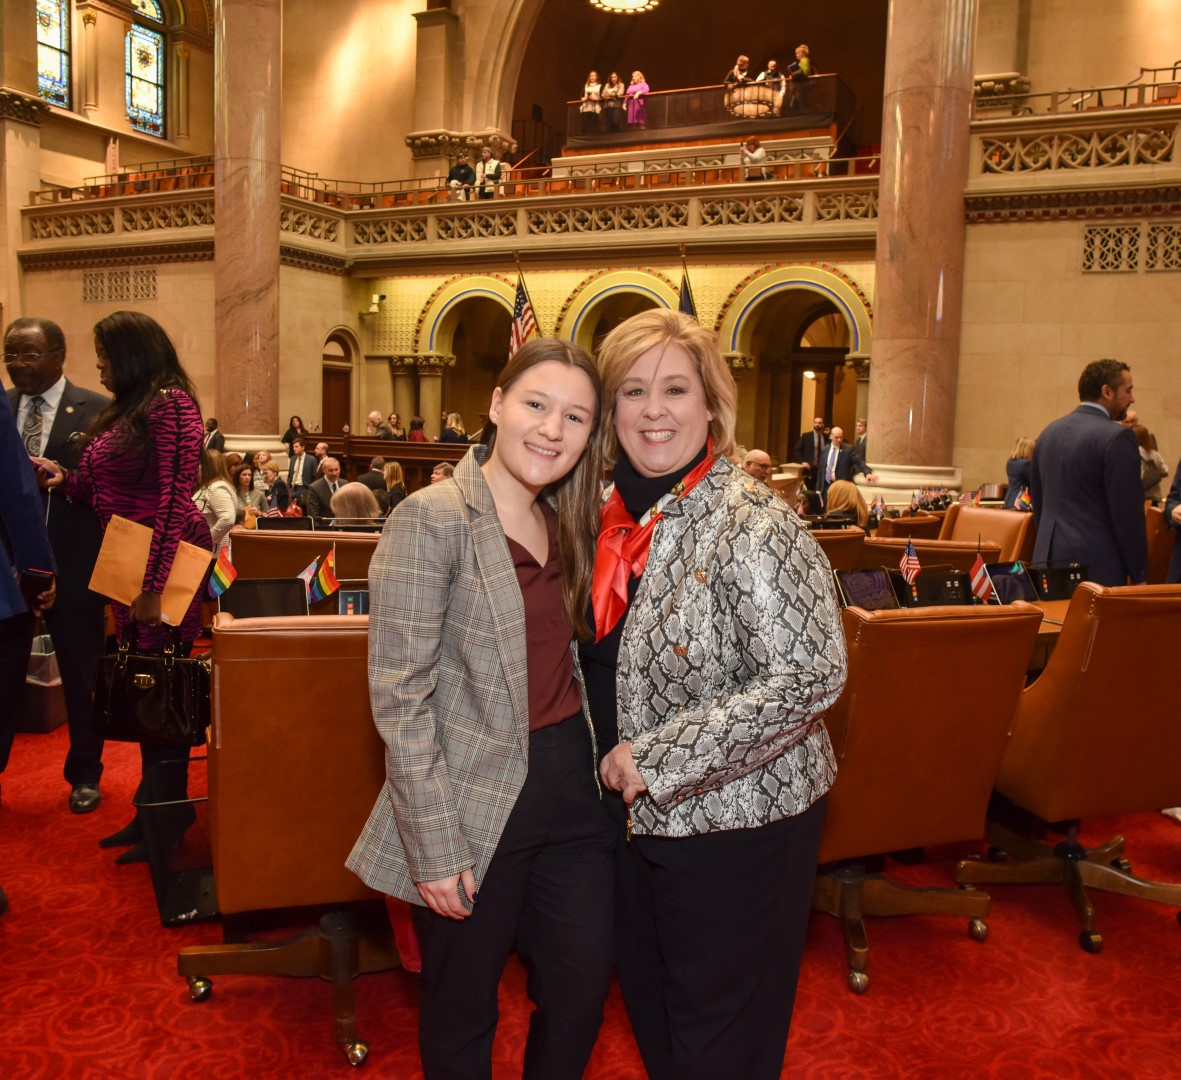 Seawright (right) with her daughter Haley (left) in Assembly Chambers.